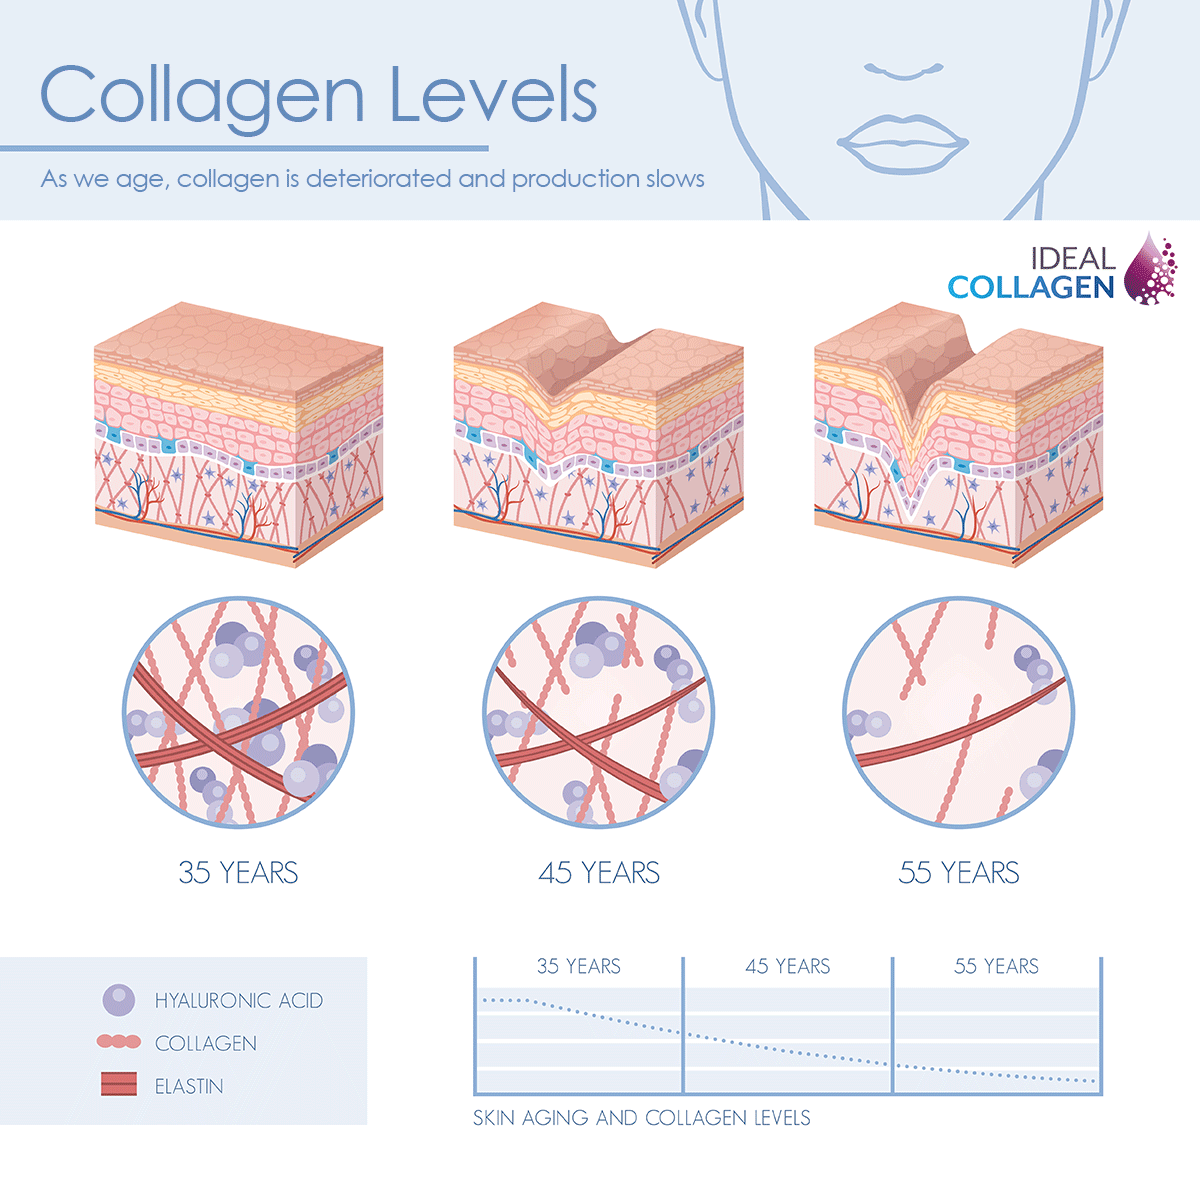 Collagen Depletion During Aging